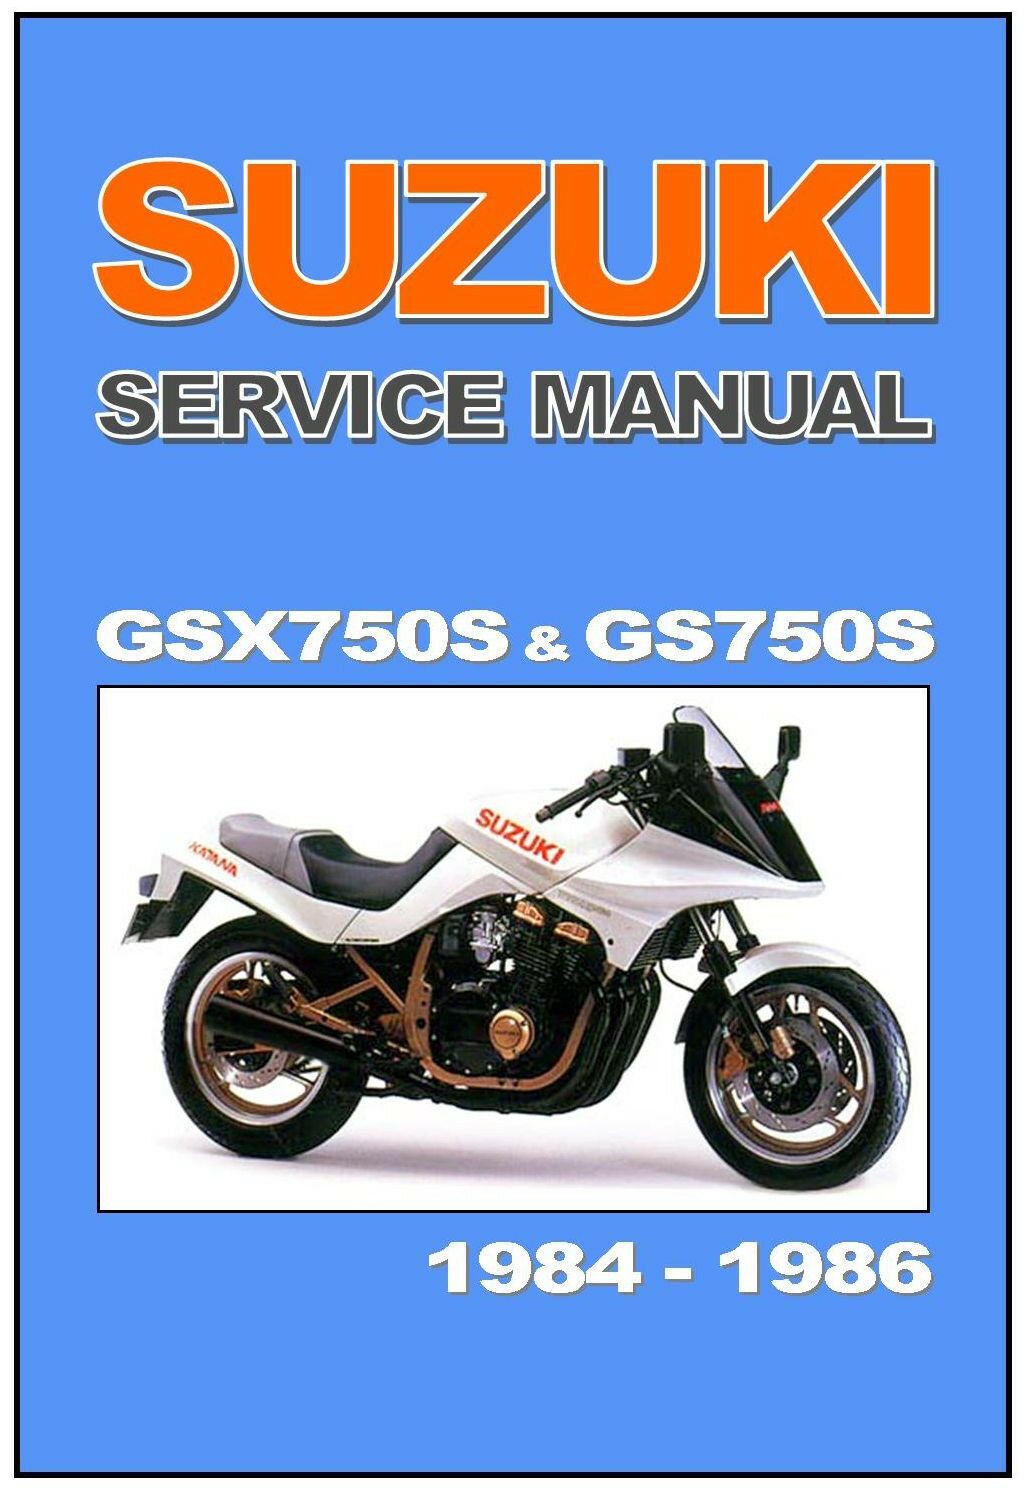 SUZUKI Workshop Manual GSX750S GS750S Katana 1984 1985 and 1986 Service  Repair 1 of 5Only 1 available ...